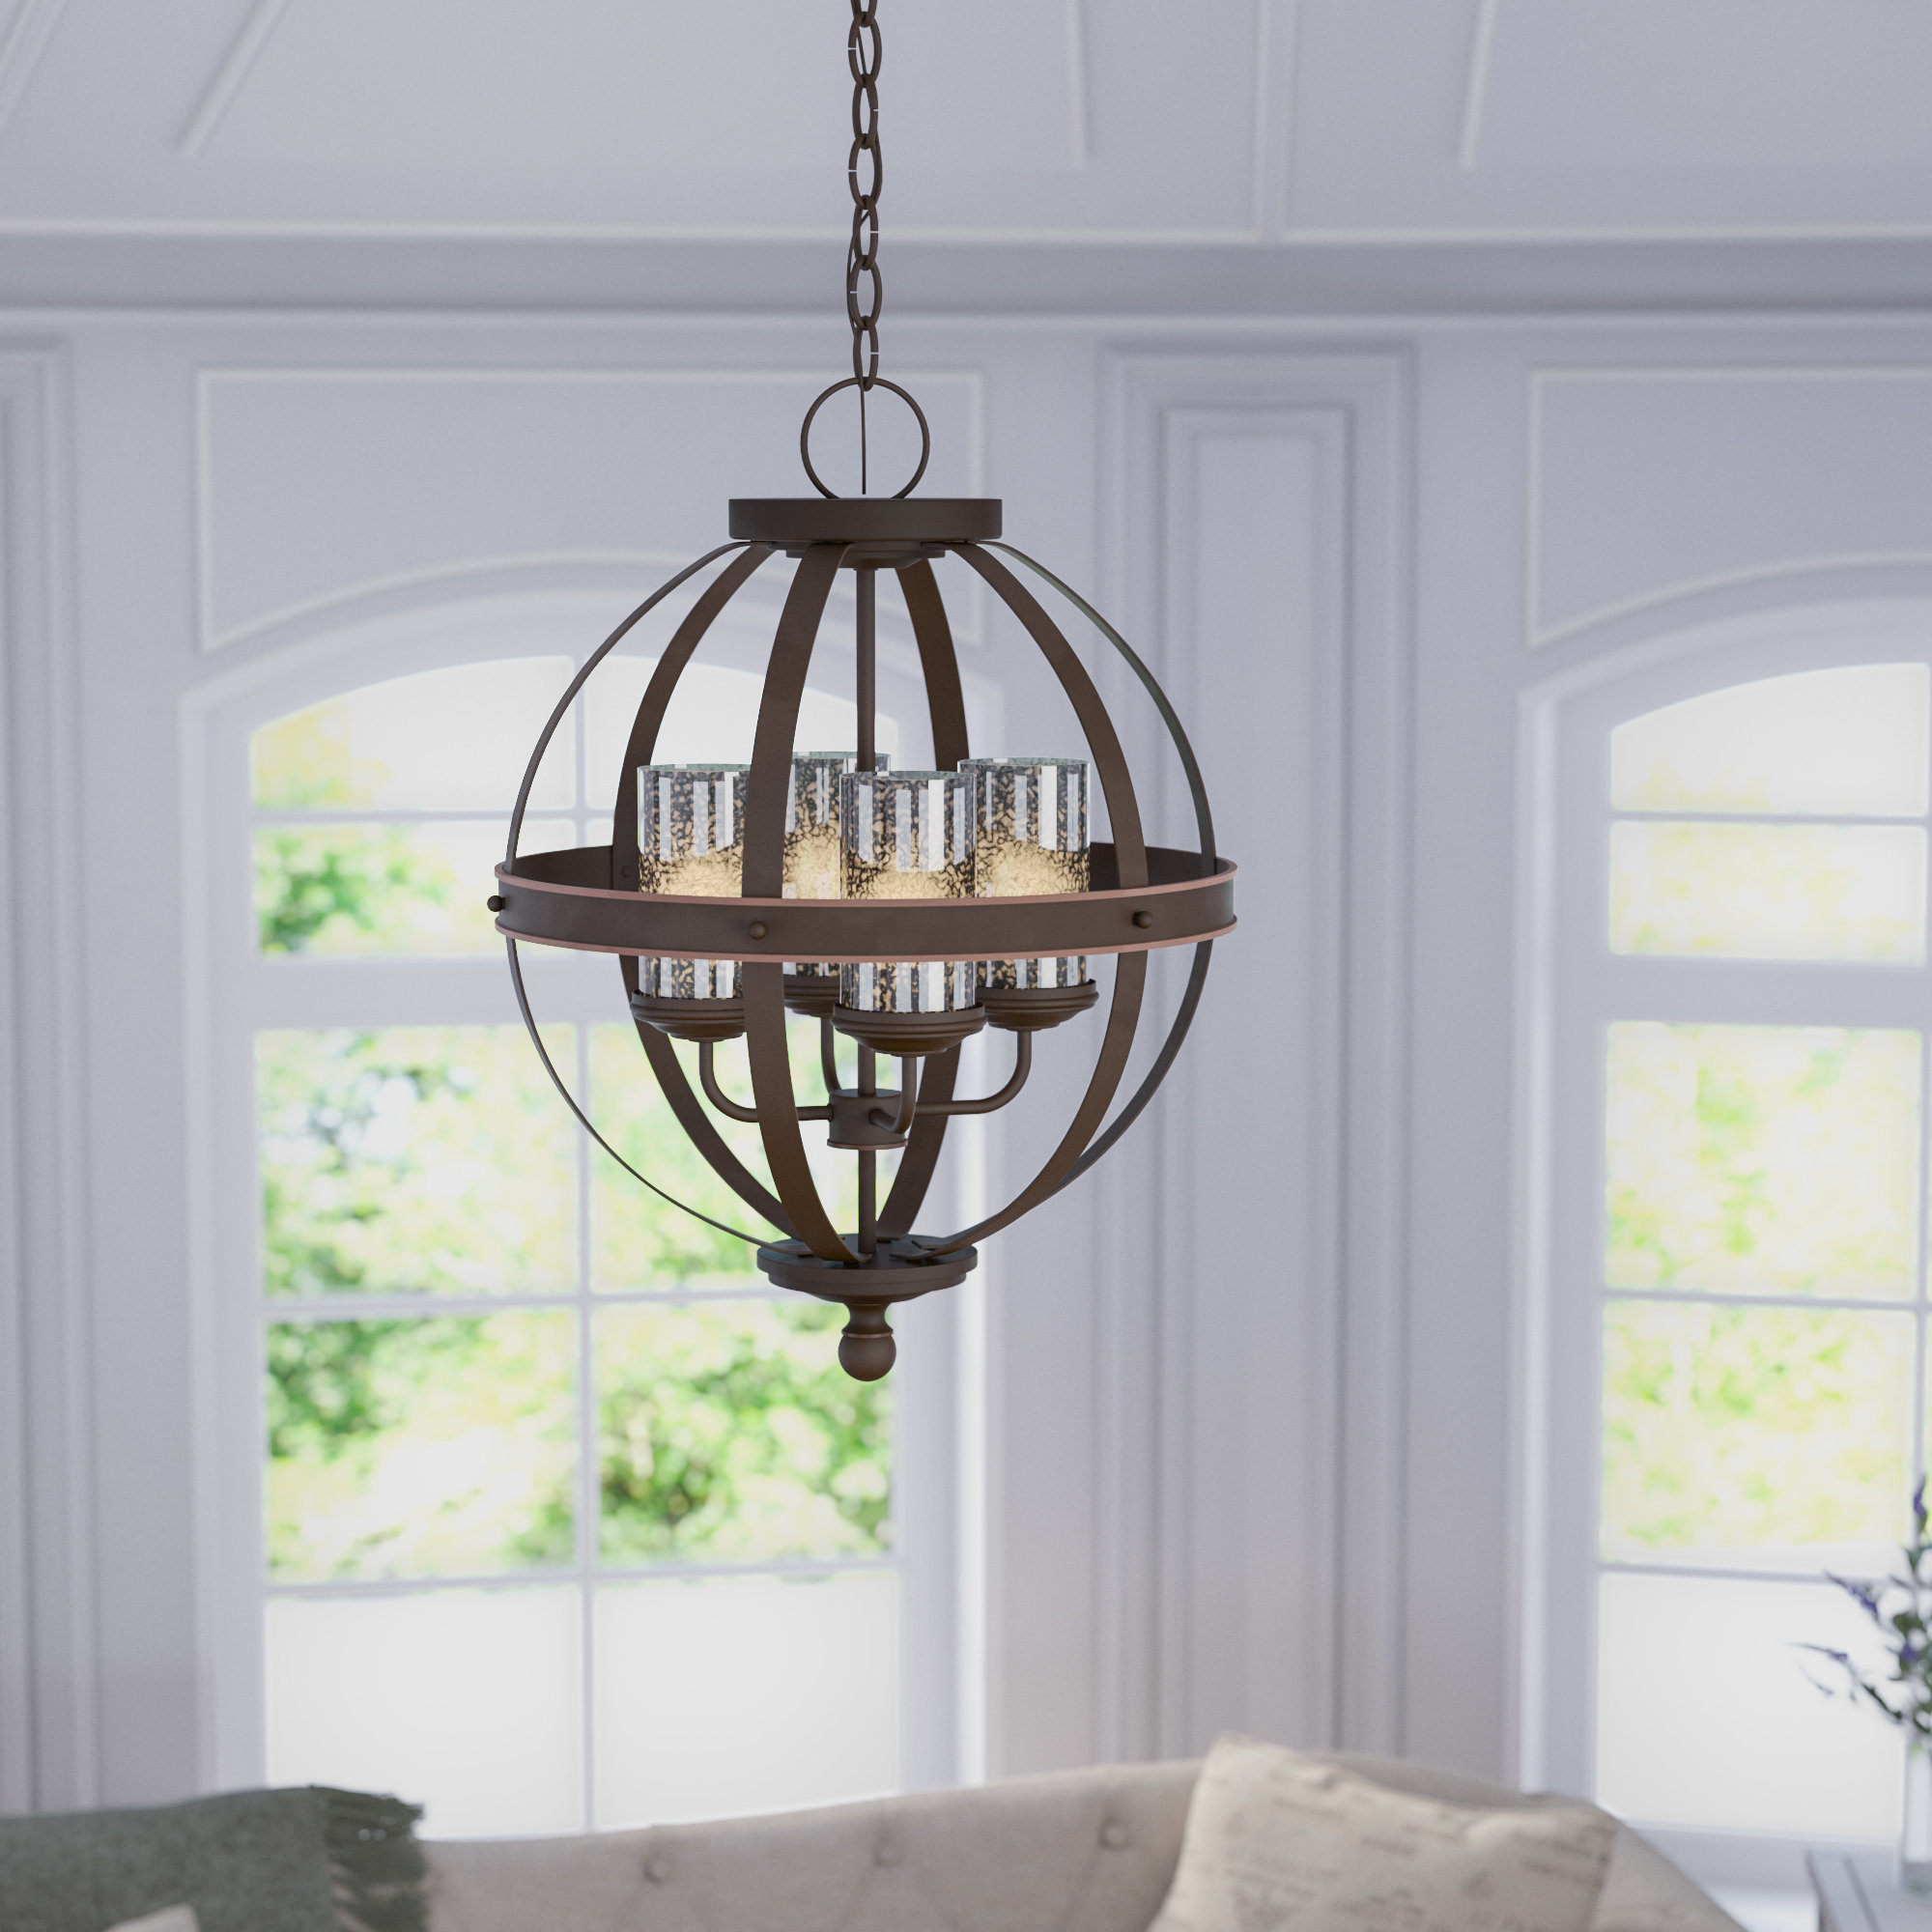 Donna 4-Light Globe Chandelier with regard to Joon 6-Light Globe Chandeliers (Image 5 of 30)